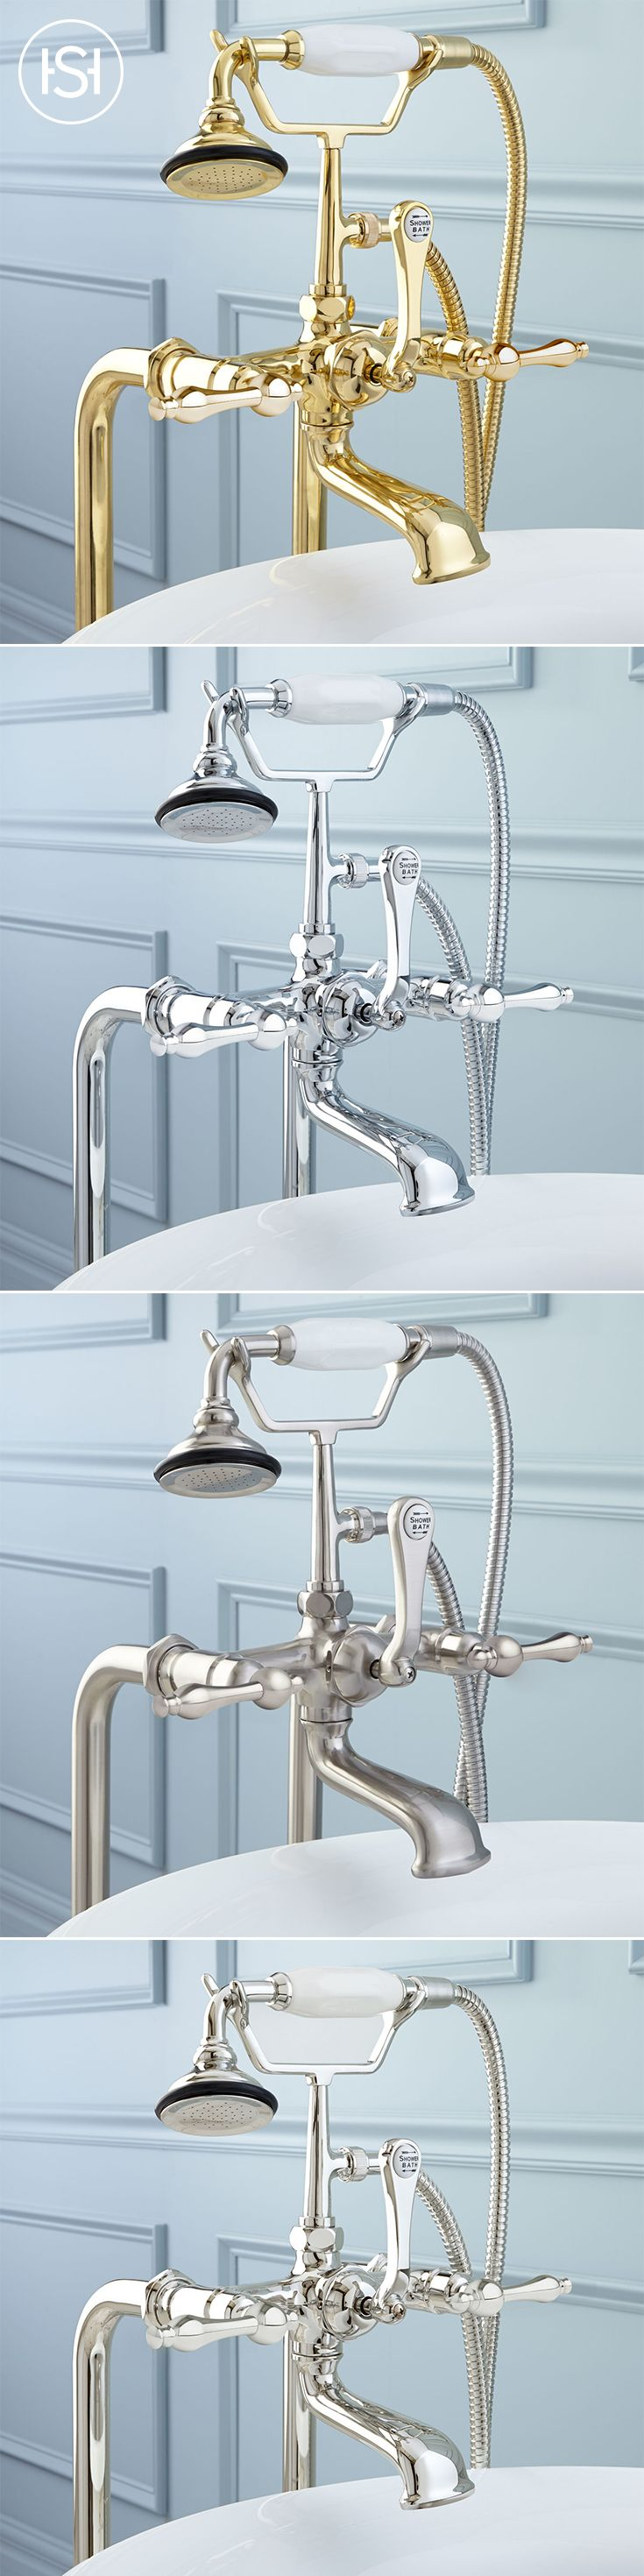 Freestanding Telephone Tub Faucet, Supplies, Valves and Drain ...